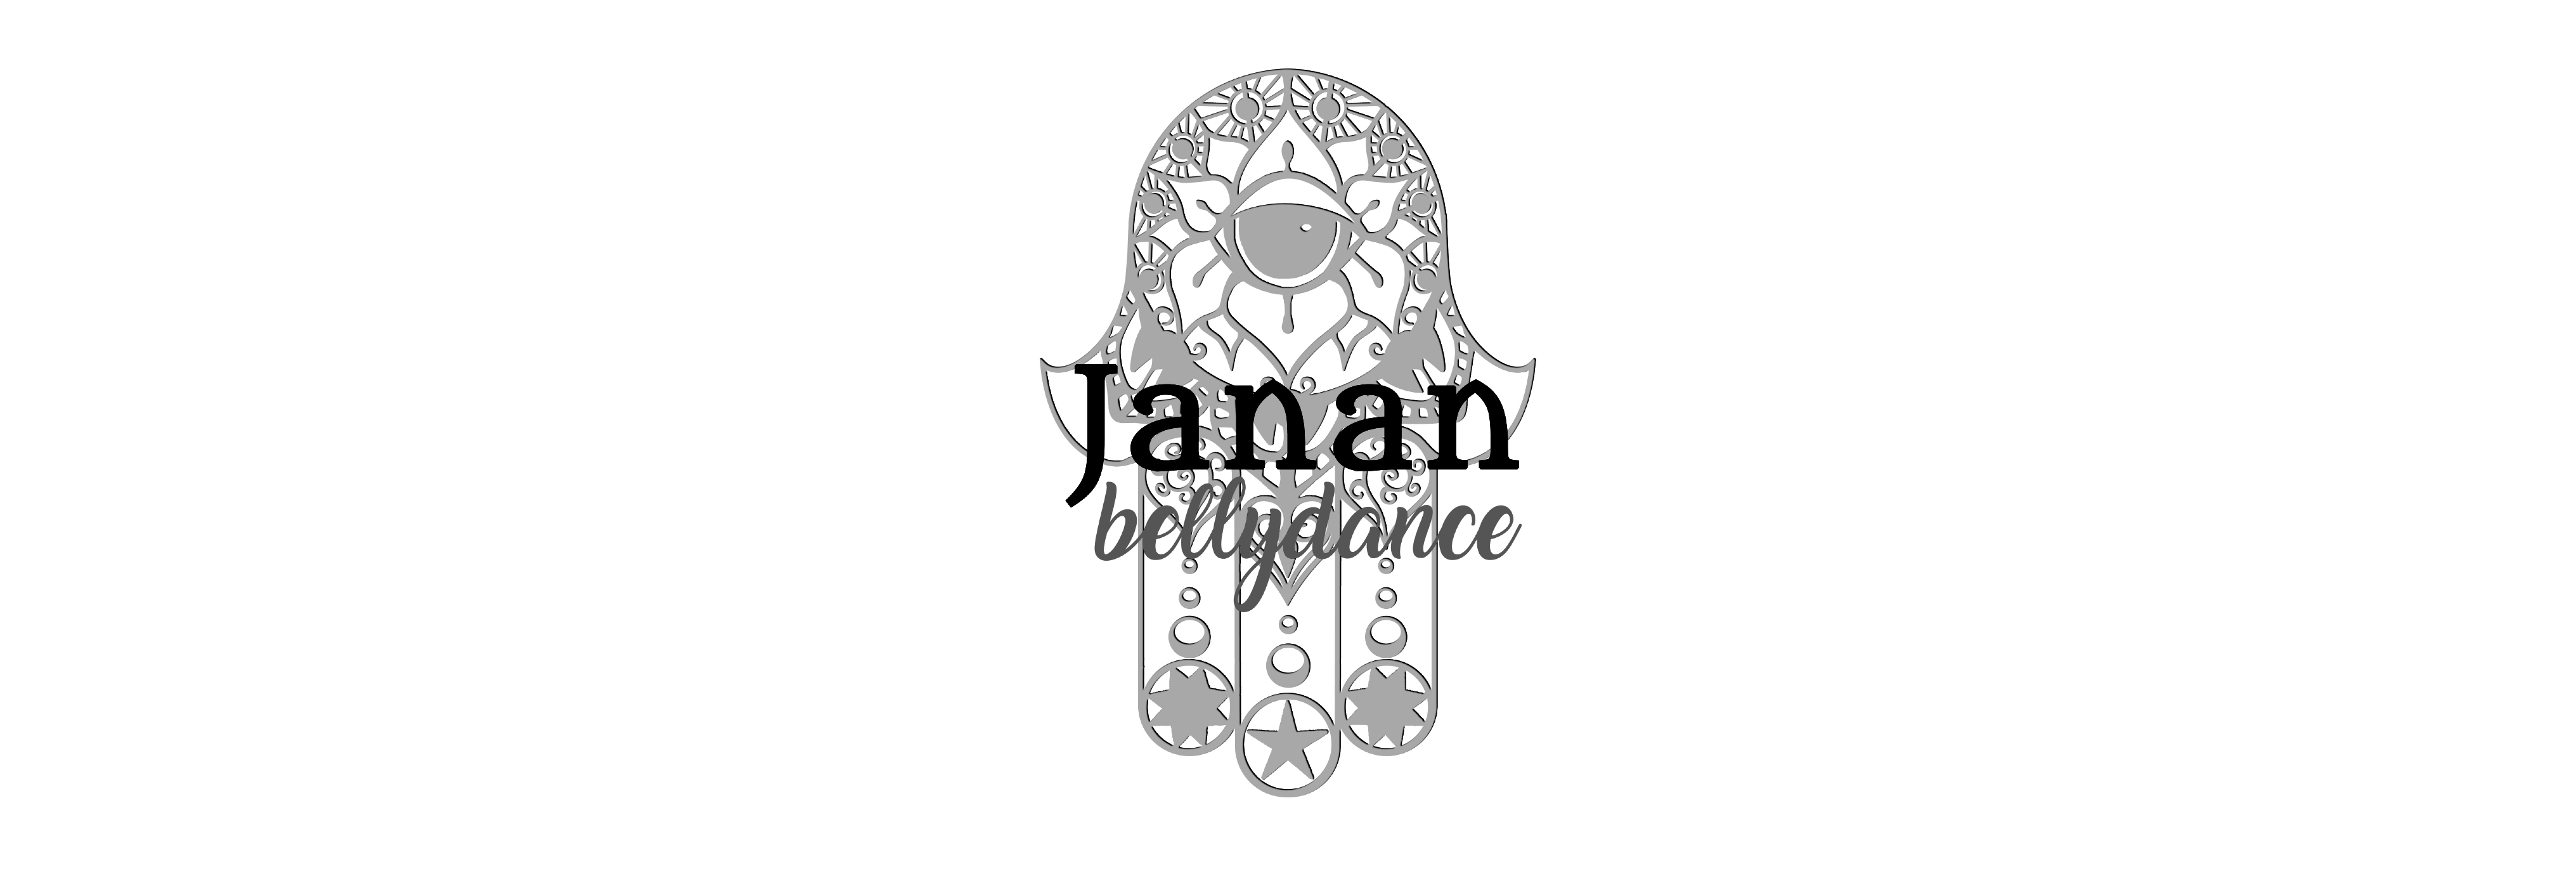 Janan Bellydance | Odd Poppy Advertising Agency | Johannesburg | Clients